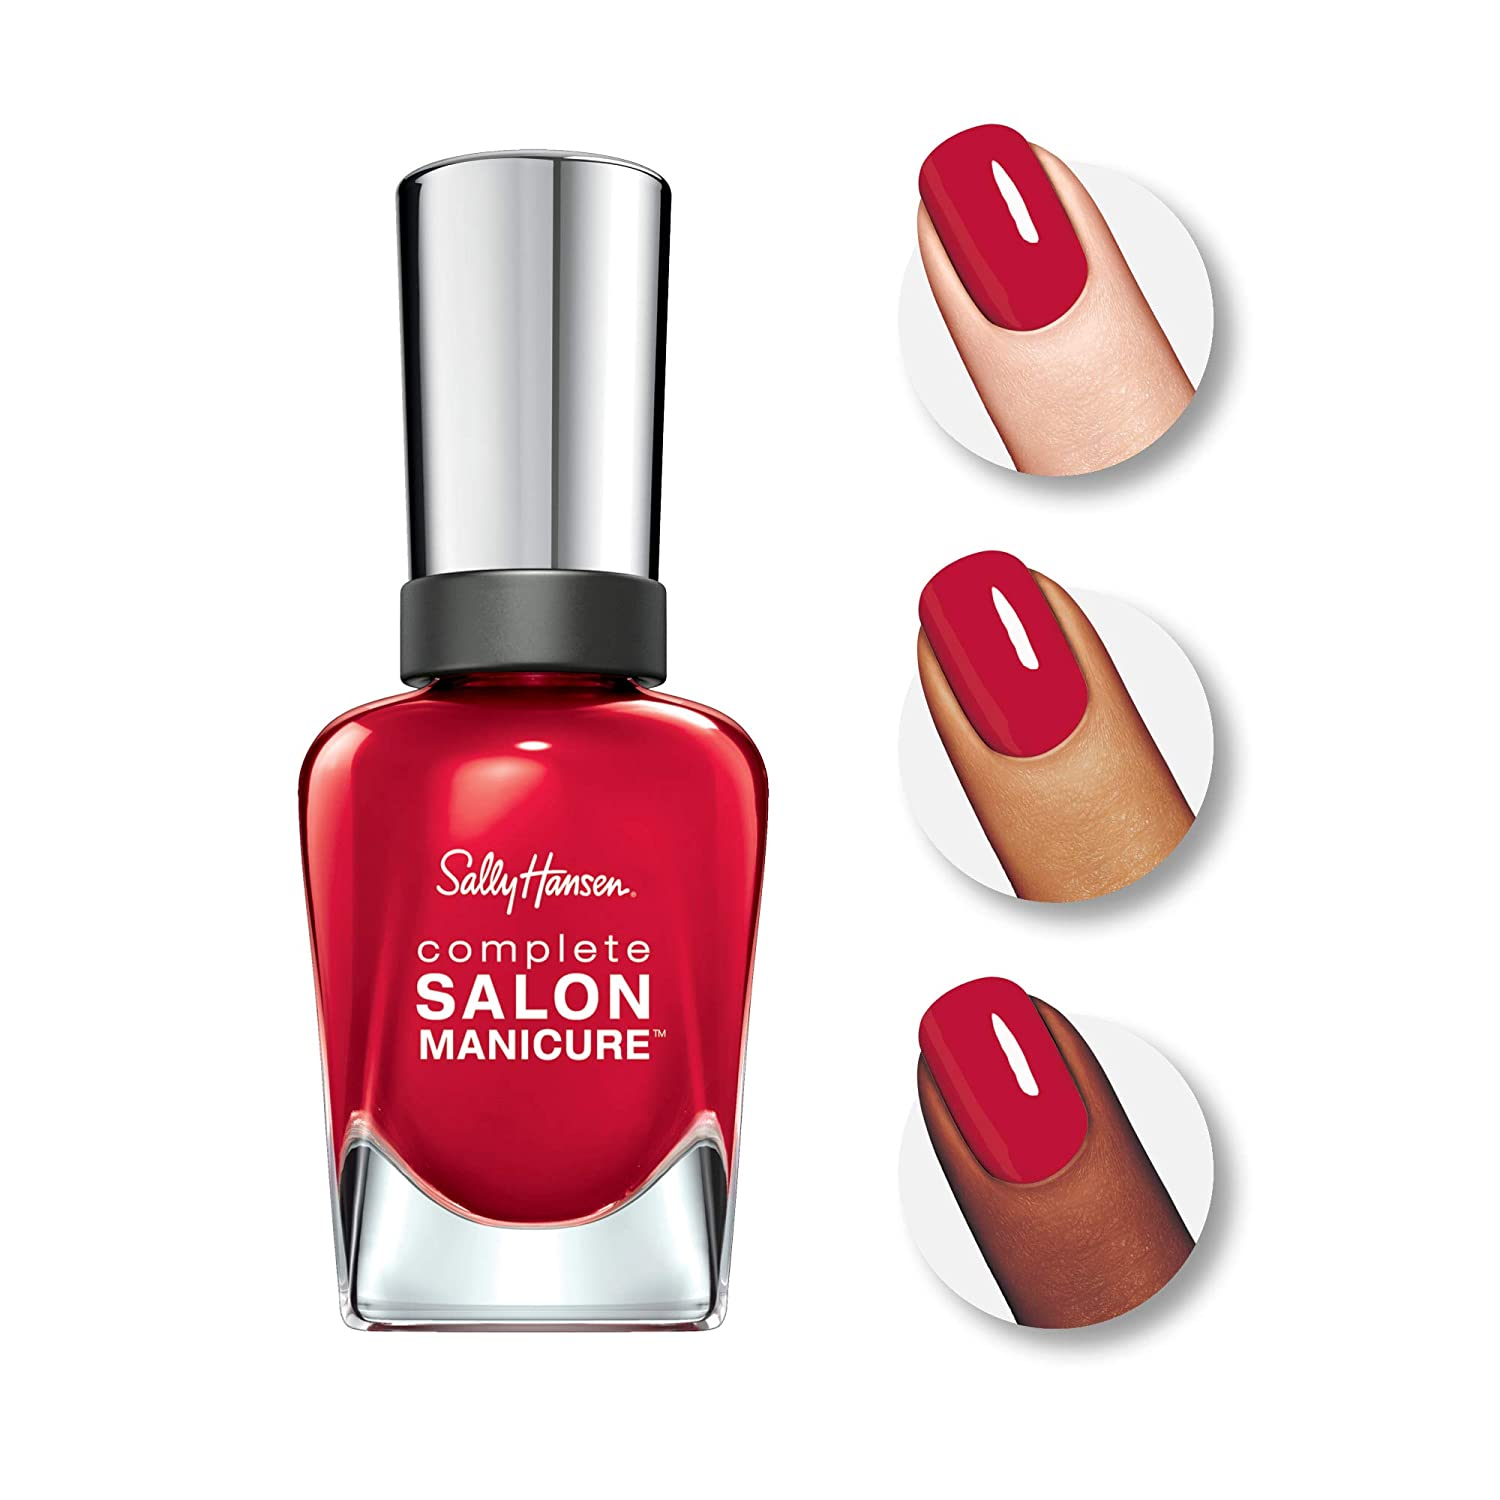 Sally Hansen Complete Salon Manicure Wine Not Burgundy-Red Nail Polish